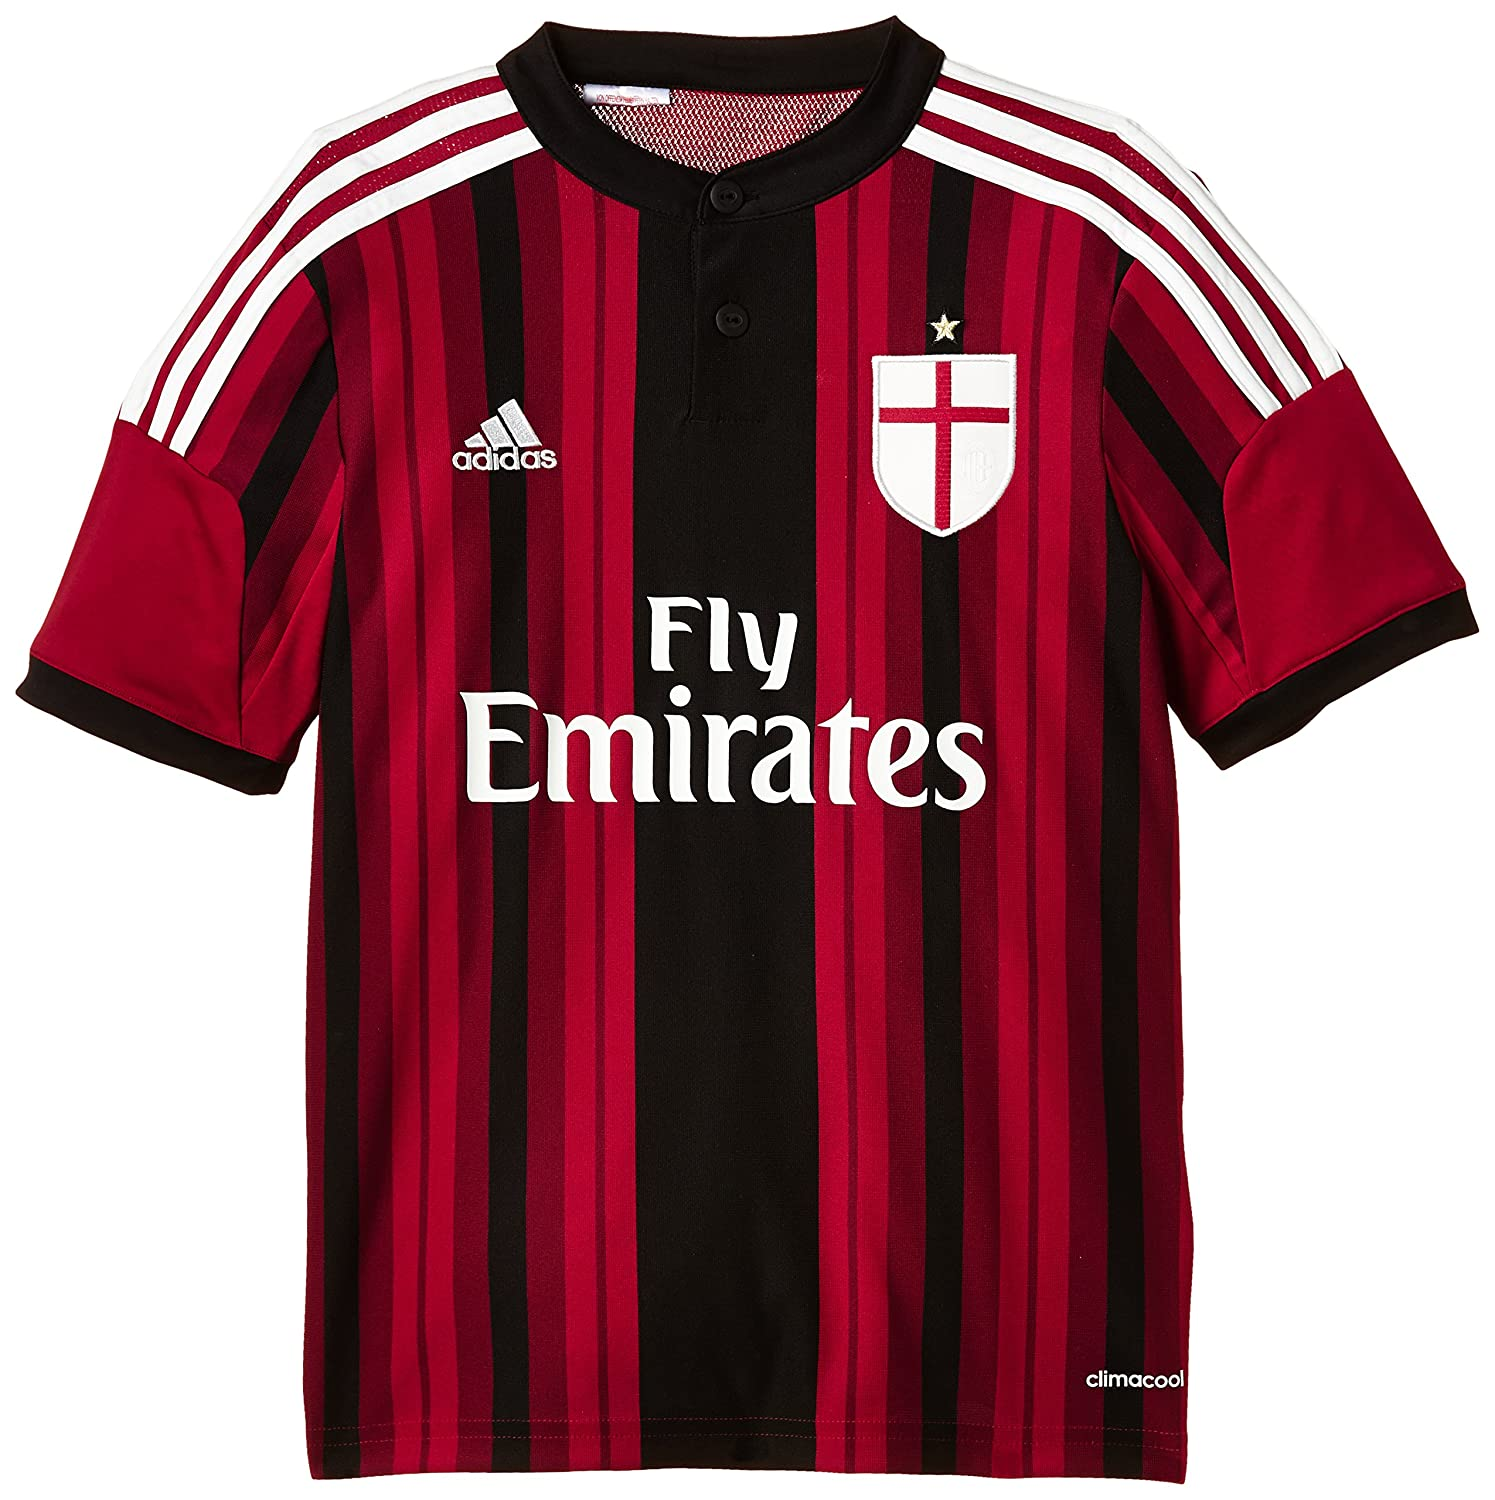 info for 9af71 cee4f Adidas Boy's AC Milan Home Jersey